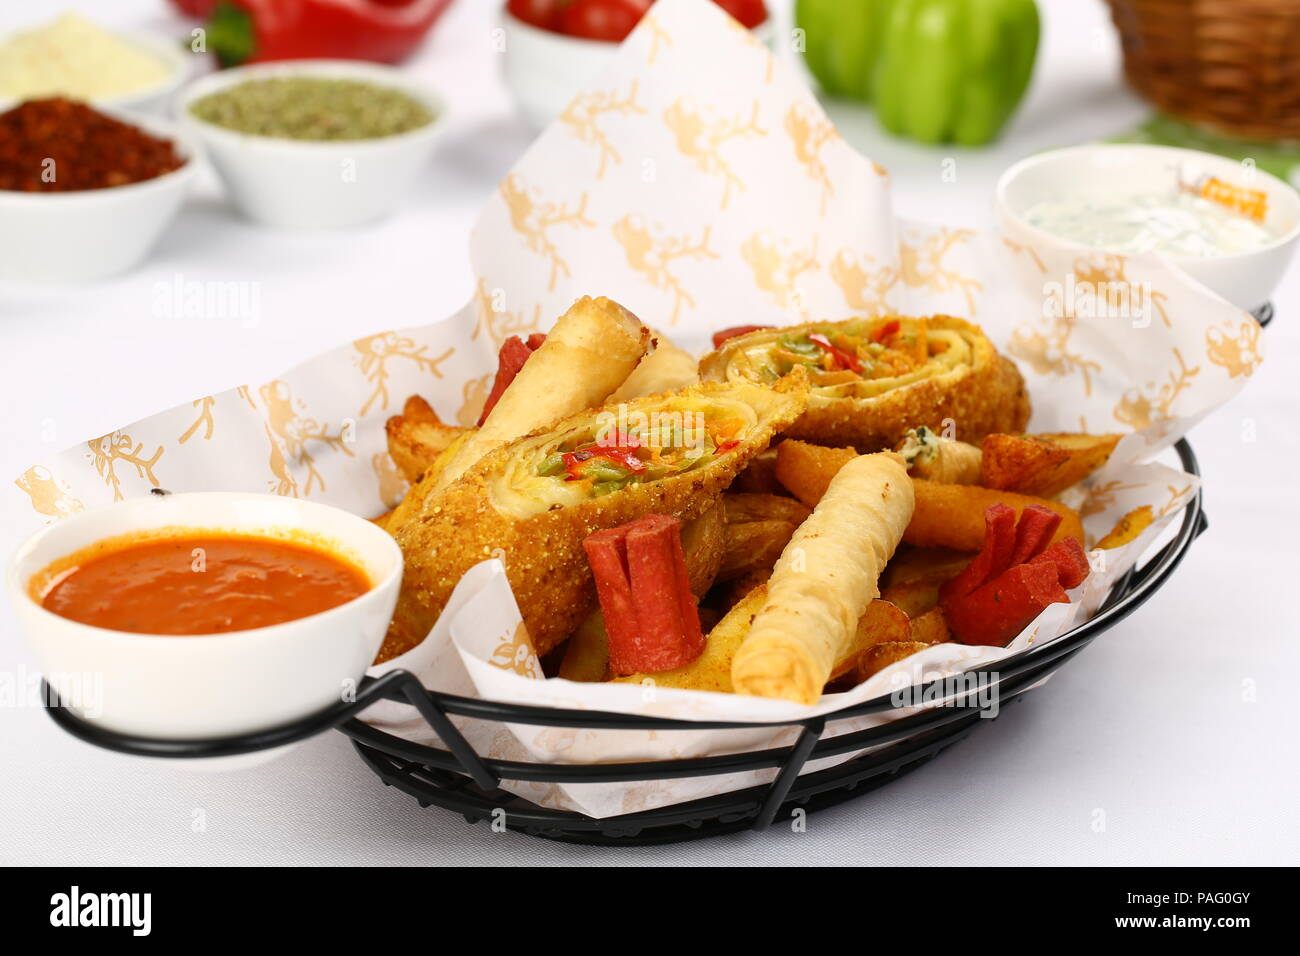 Mixed appetizer of french fries, fried sasusage, fried zucchini, pastry, sigara borek with sauces - Stock Image